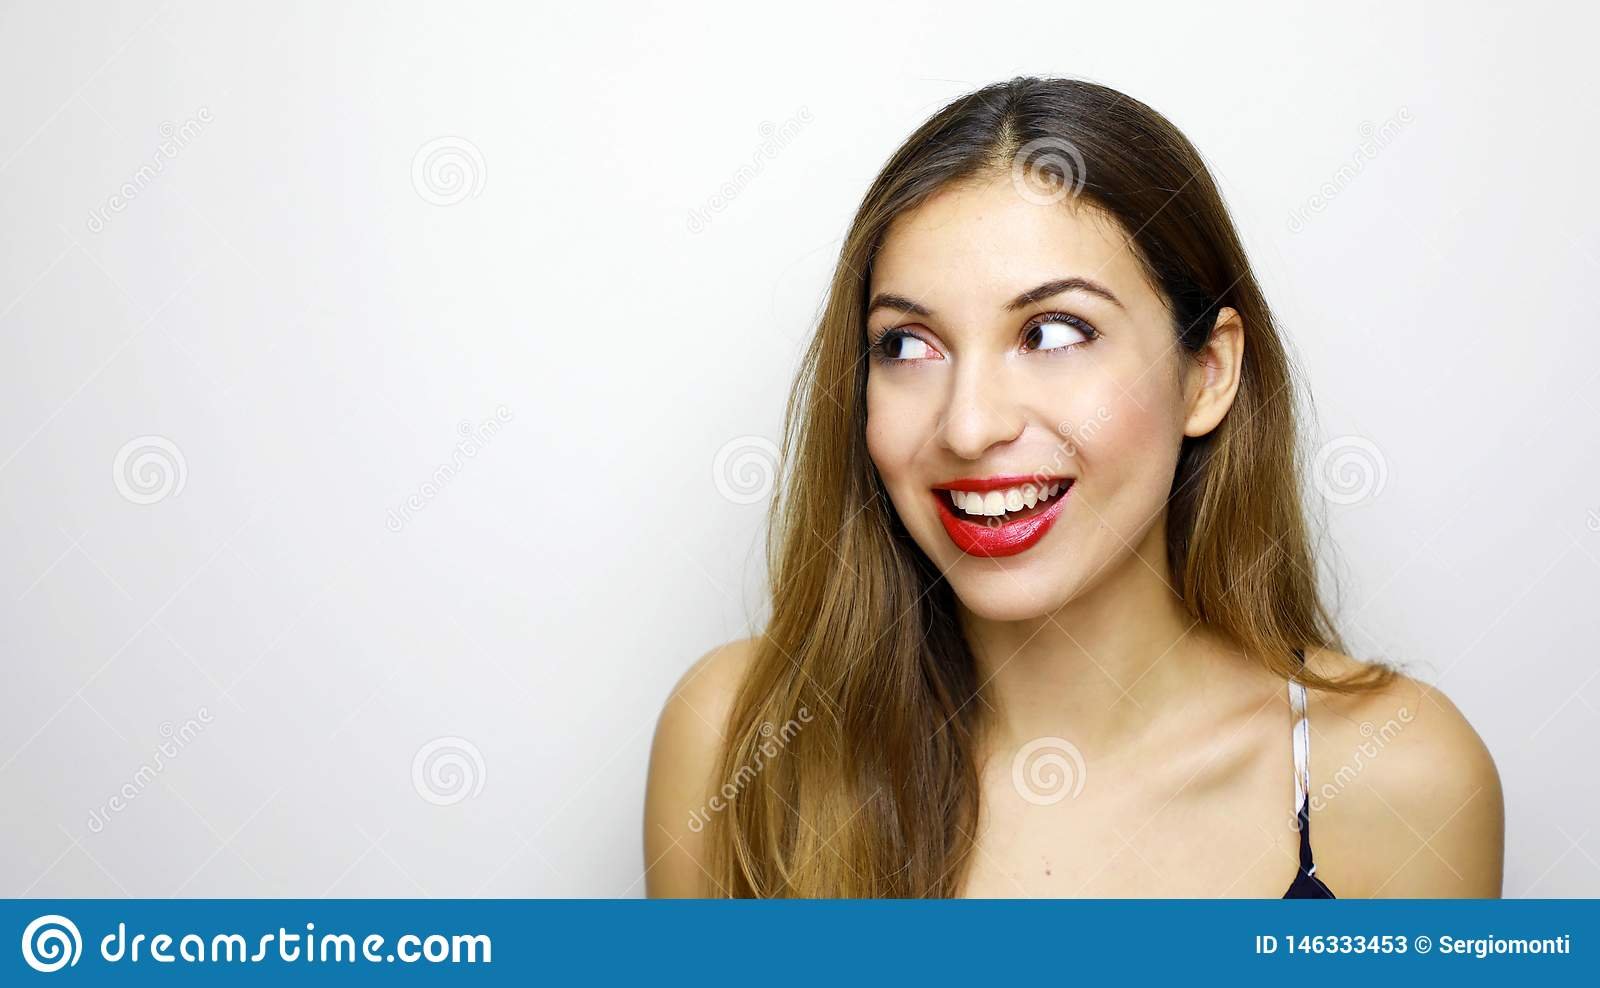 A happy surprised woman looking to the side at copy space isolated on white background